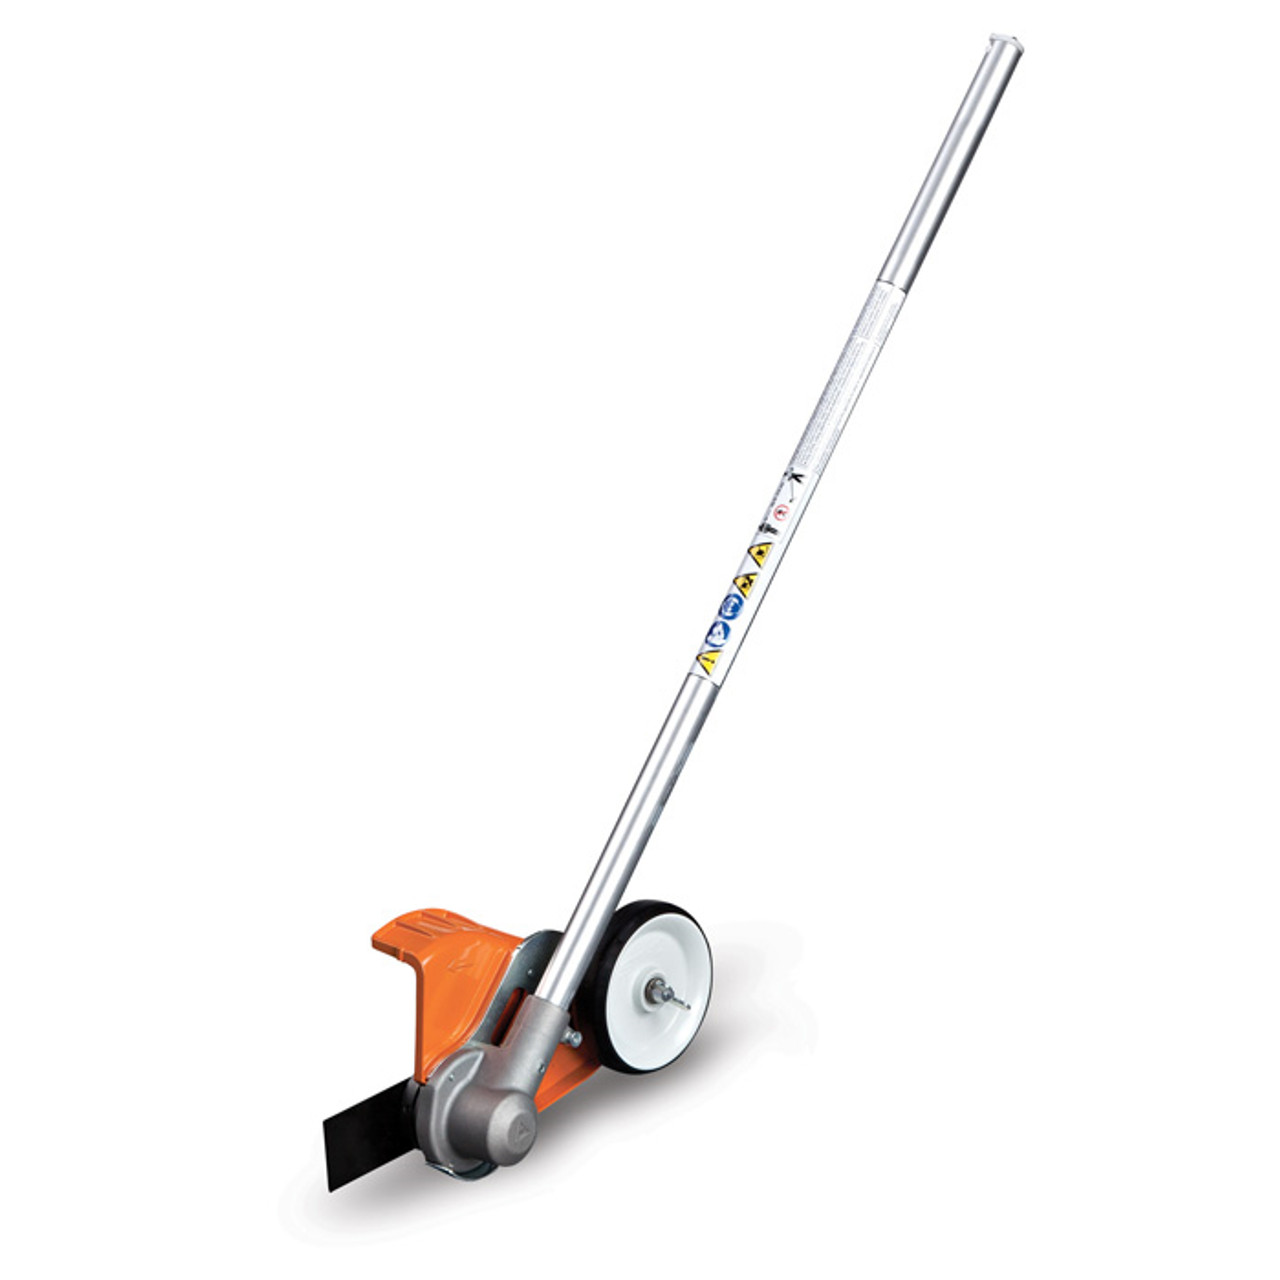 STIHL FCS-KM Straight Shaft Edger KombiSystem Attachment Image